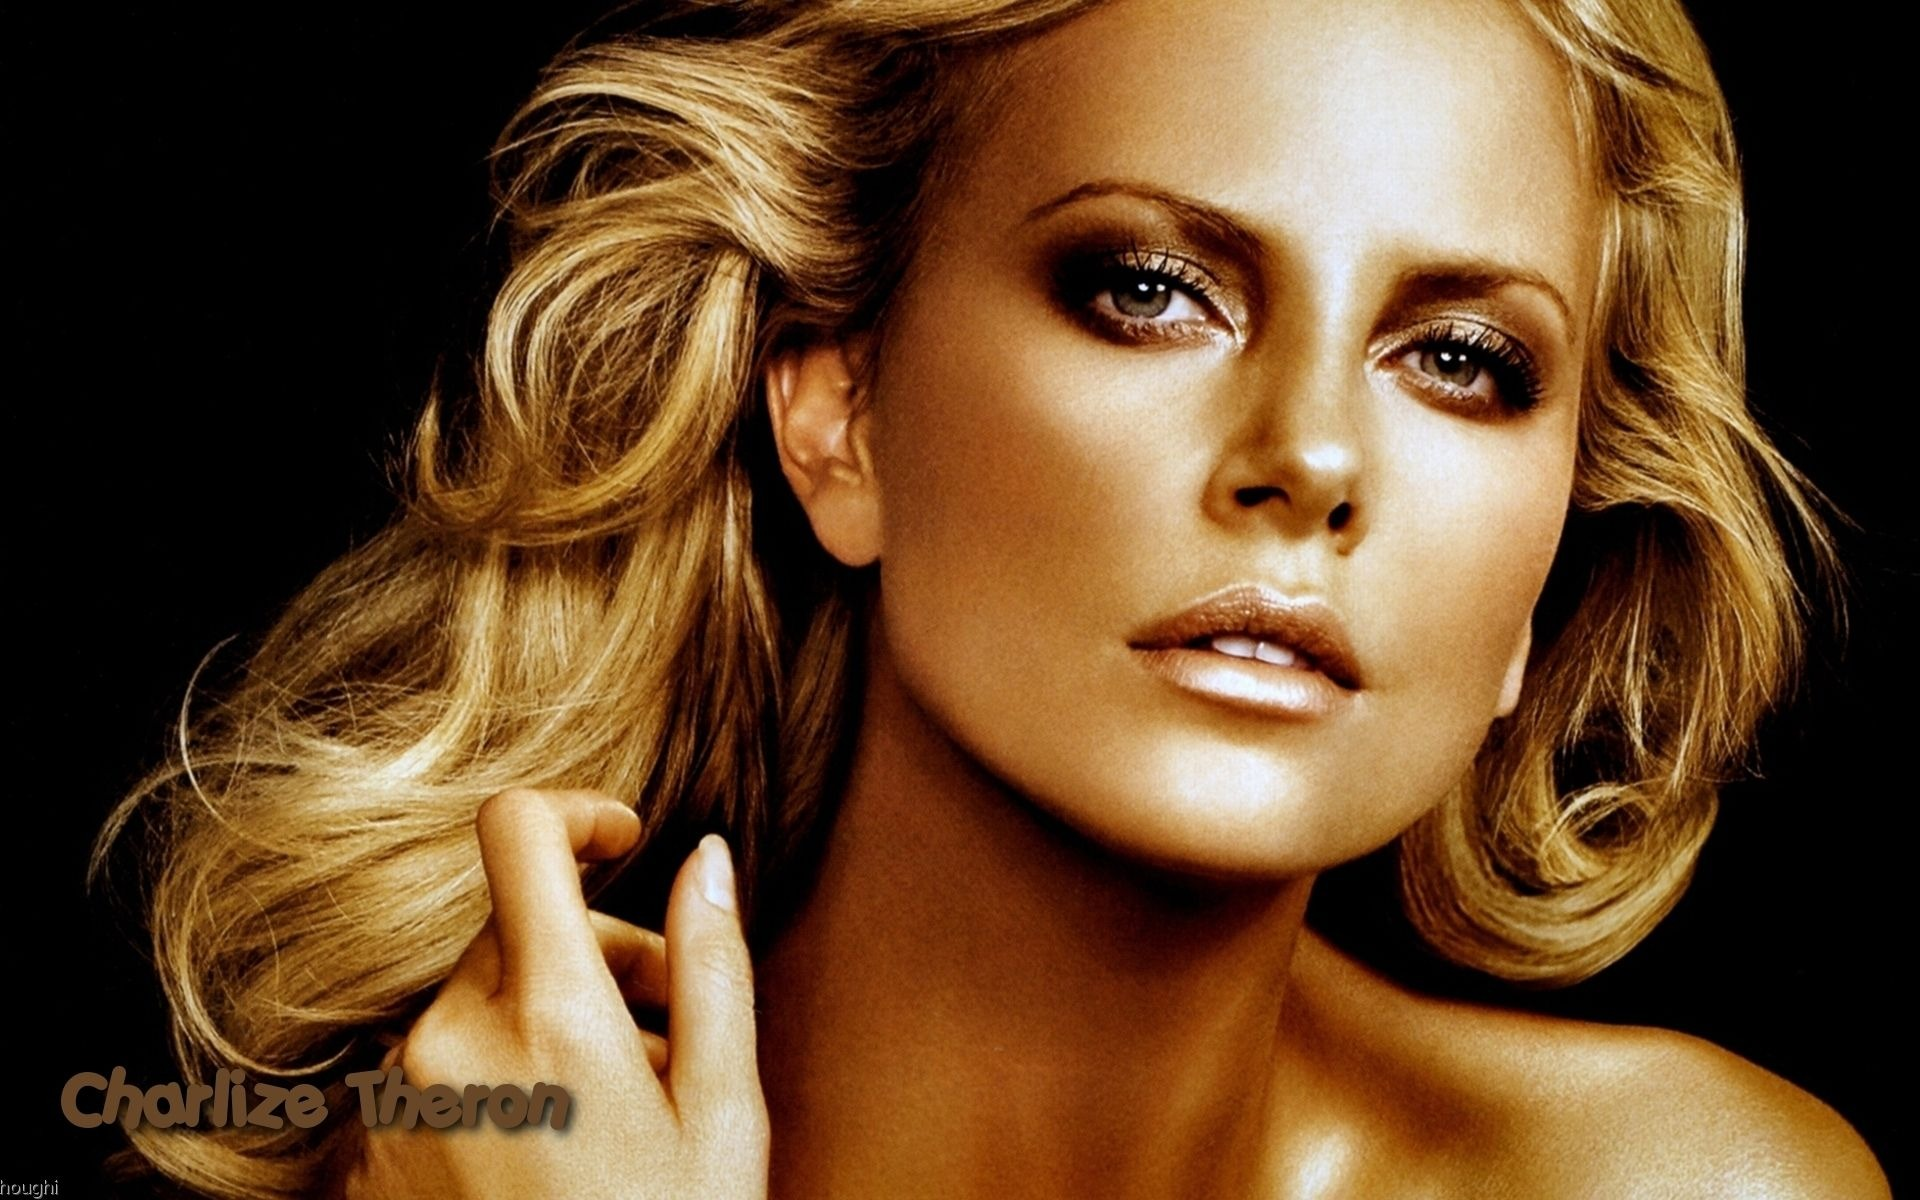 Charlize Theron #072 - 1920x1200 Wallpapers Pictures Photos Images